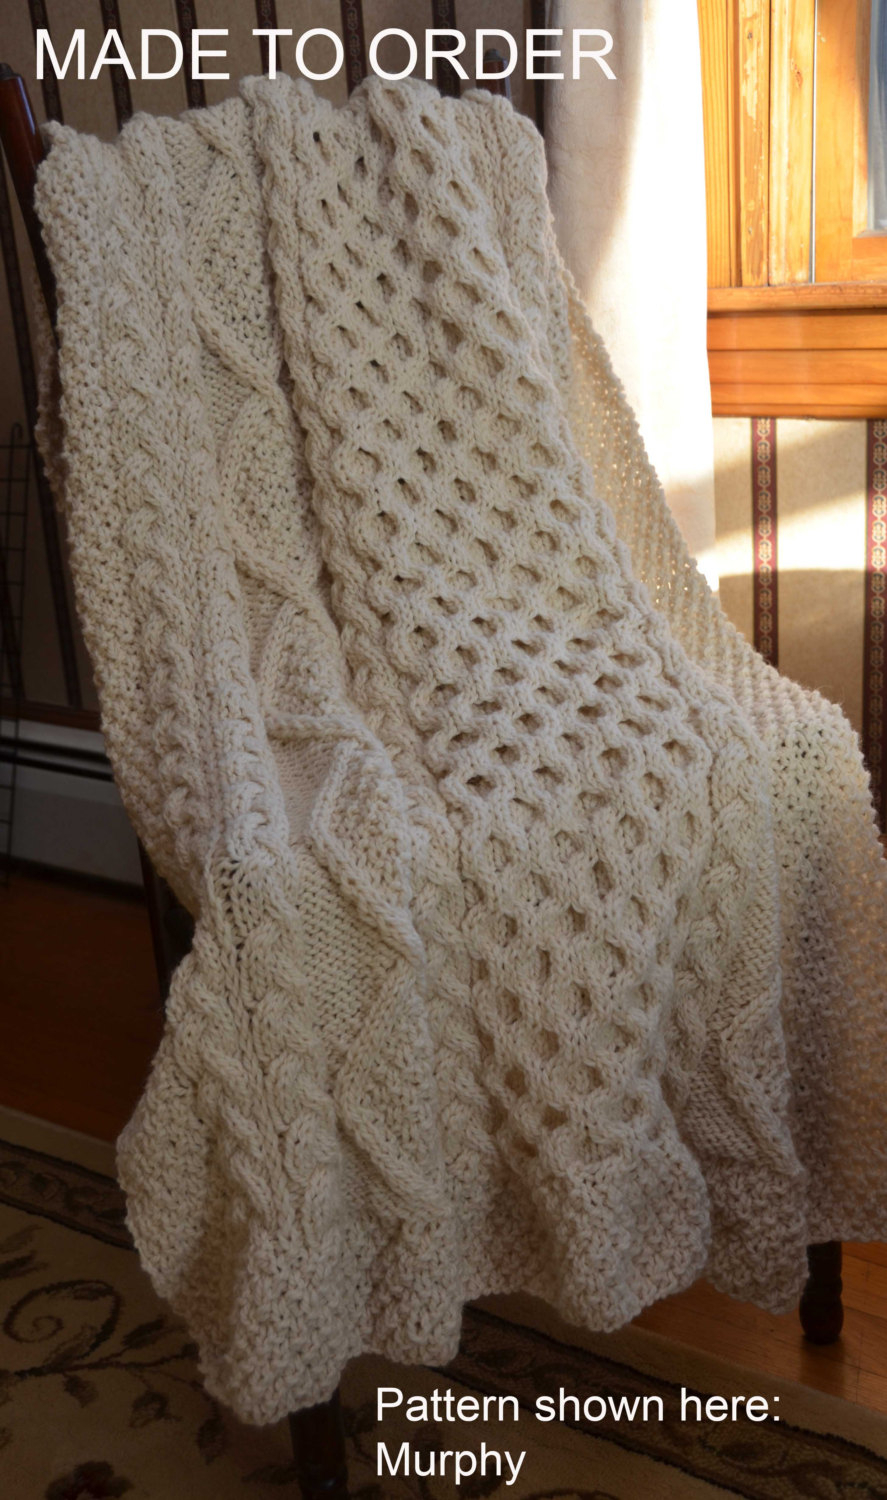 Hand Knitted Throw Patterns Irish Fisherman Inspired Hand Knit Throw Blanket Made To Order